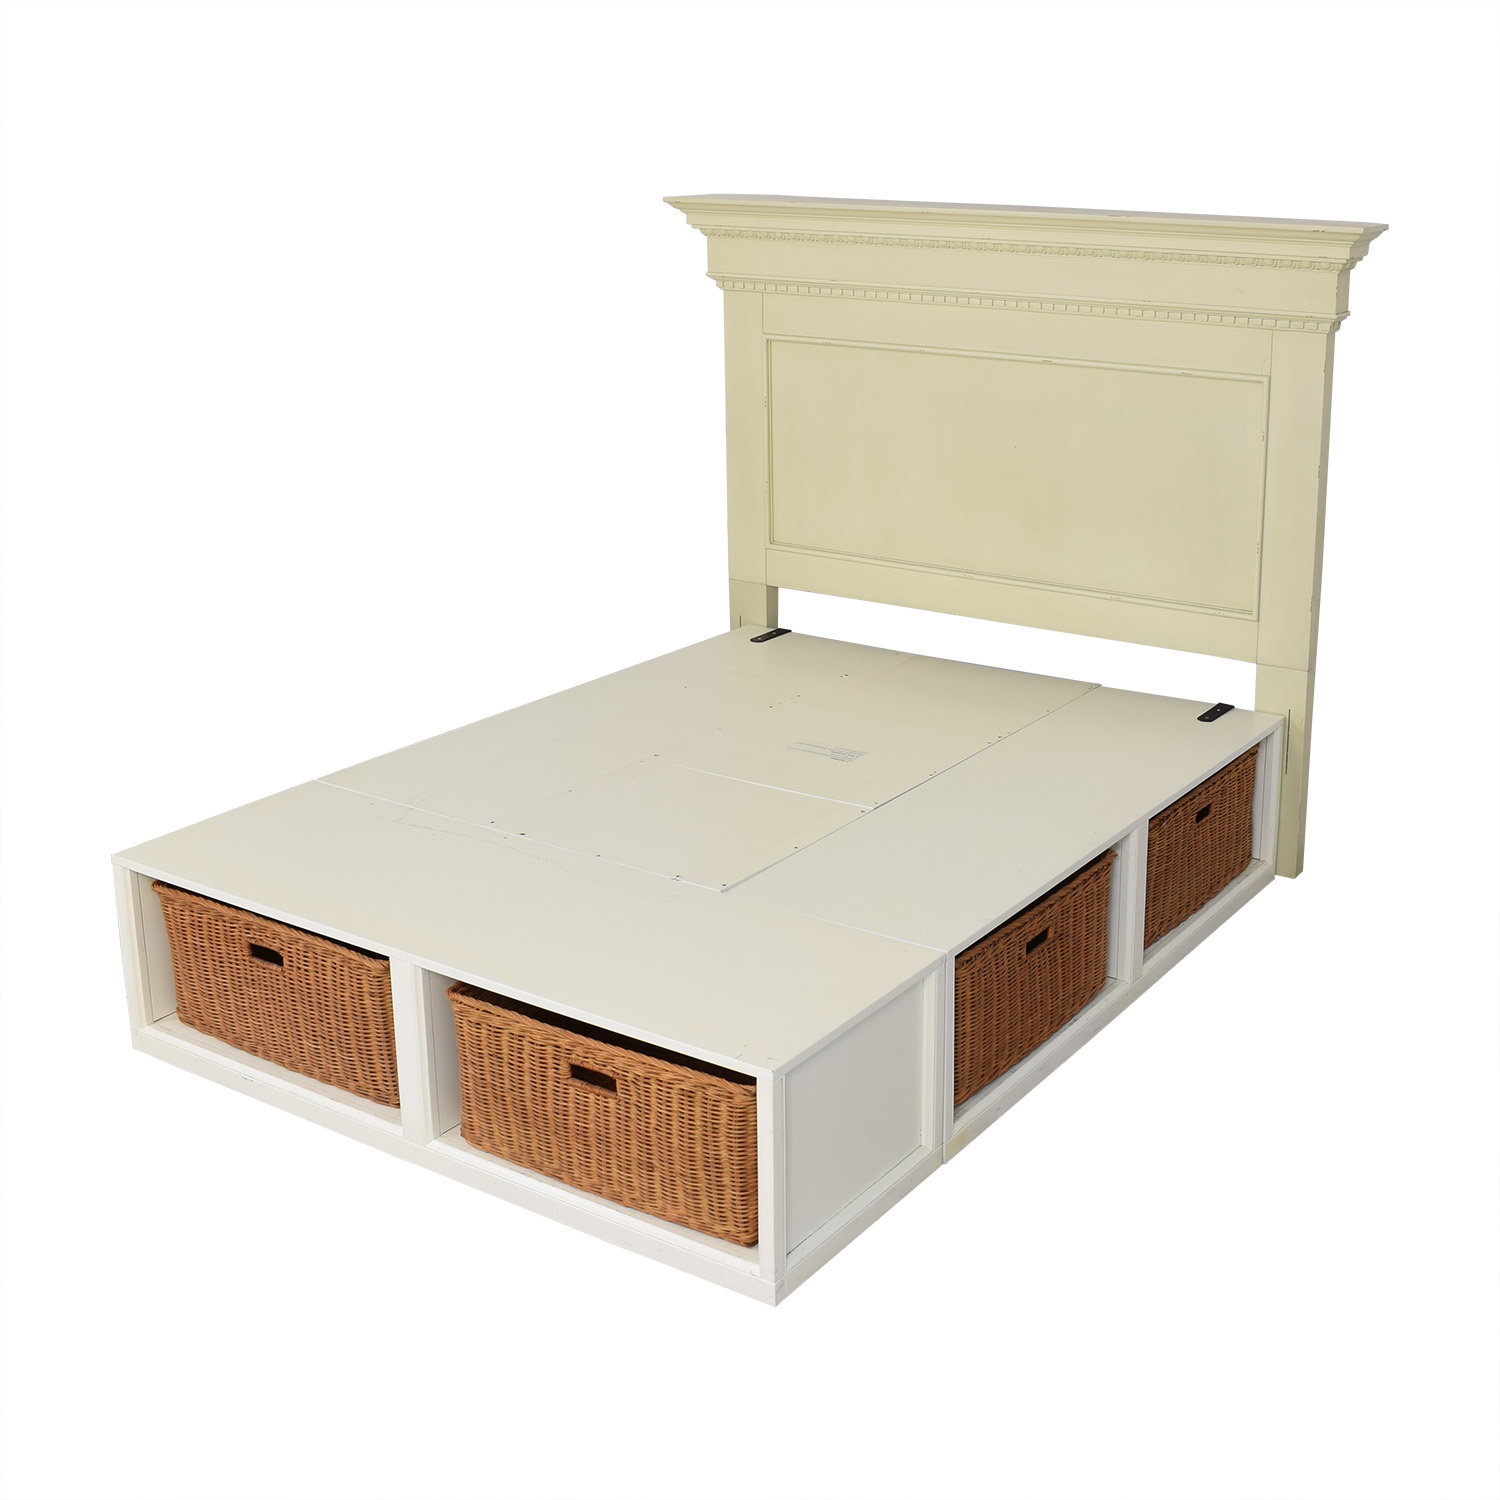 buy Pottery Barn Pottery Barn Addison Headboard and Stratton Storage Platform Bed with Baskets online